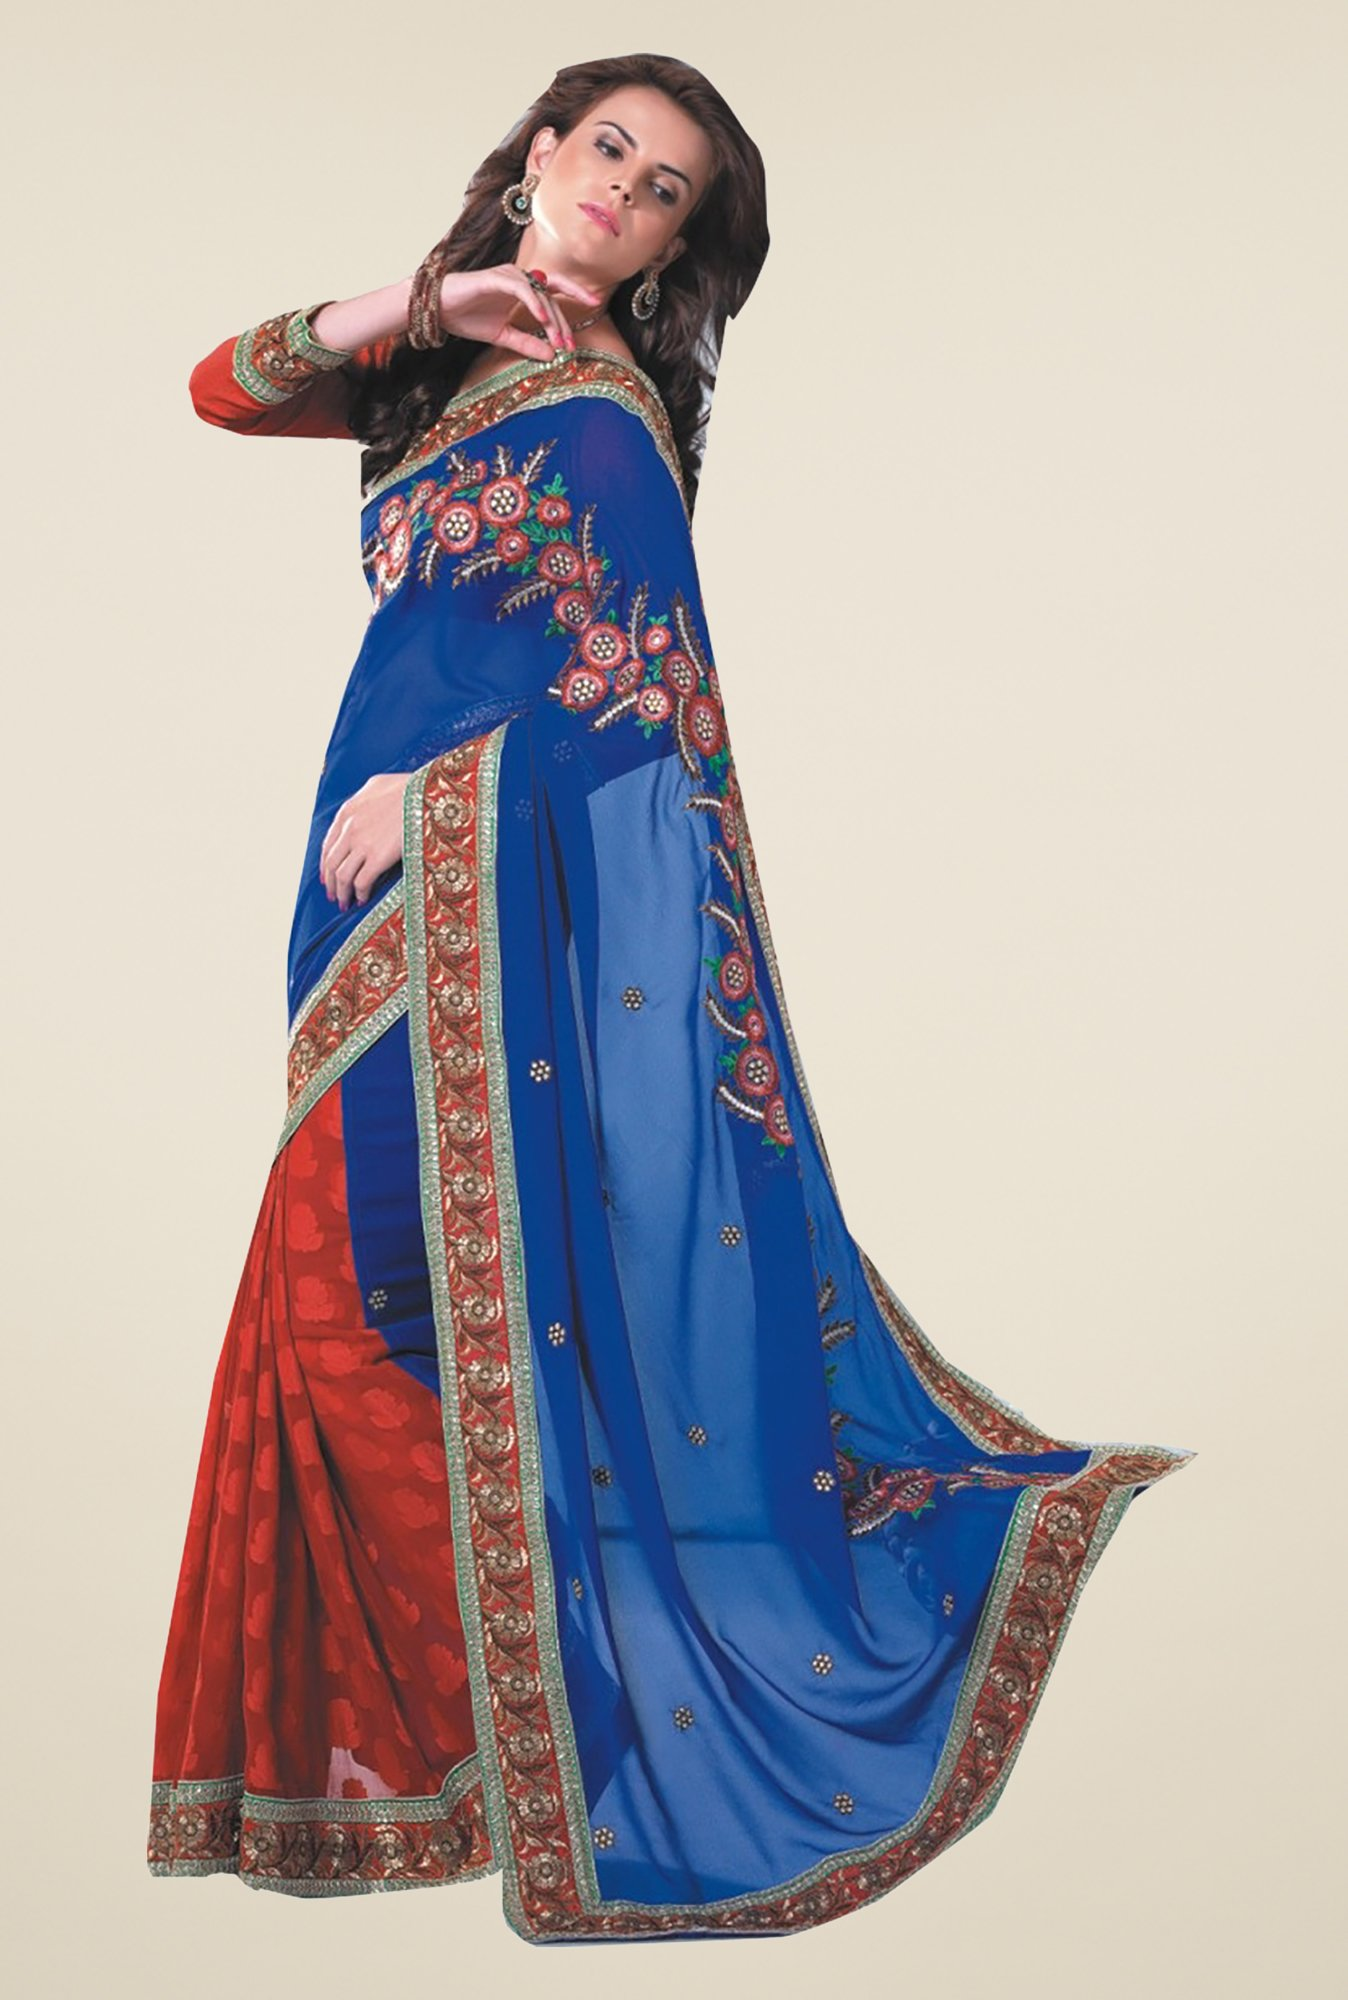 Ishin Red & Blue Faux Georgette & Chiffon Half & Half Saree